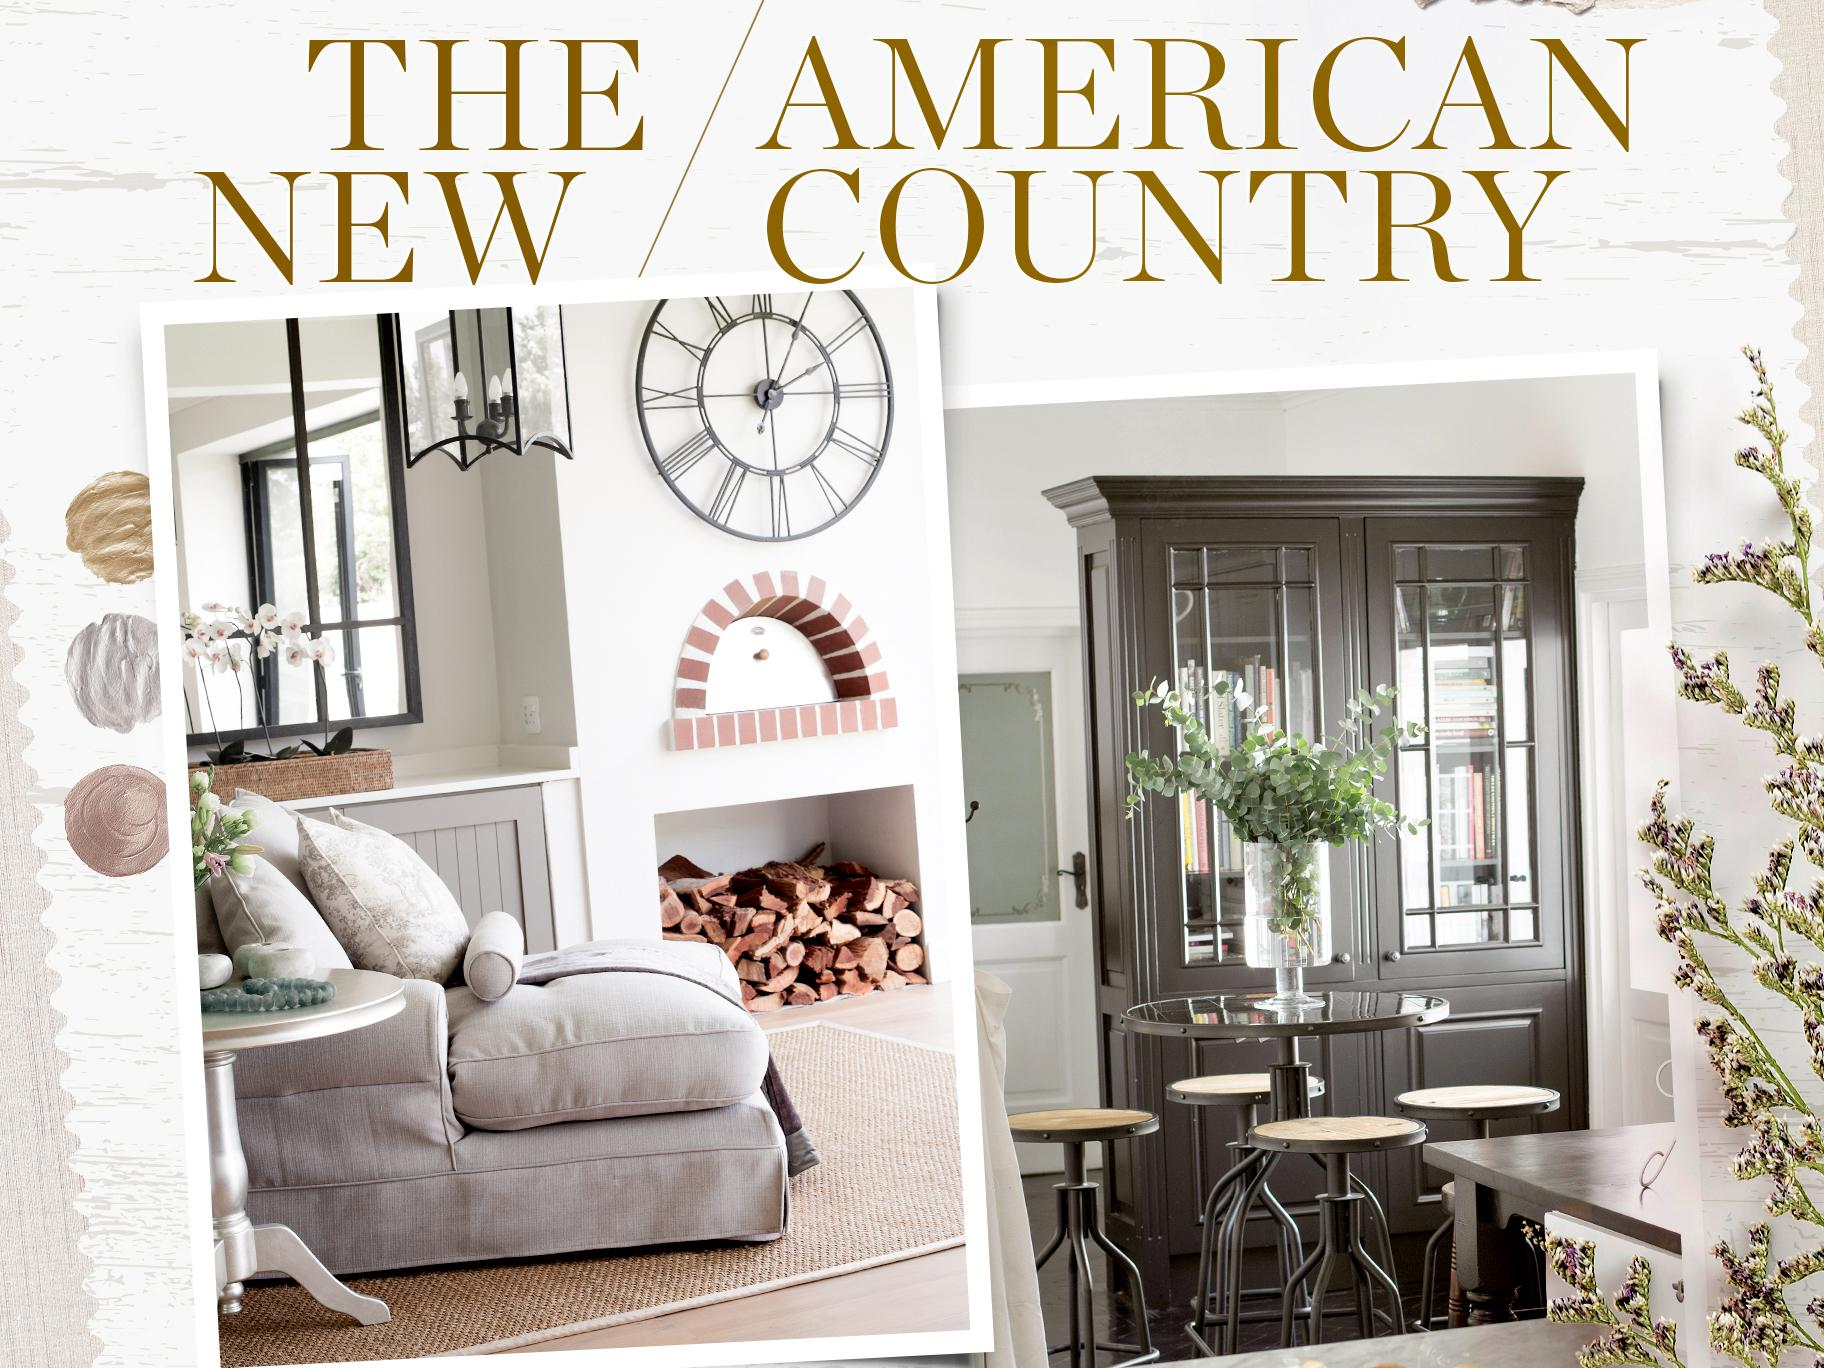 The new American Country